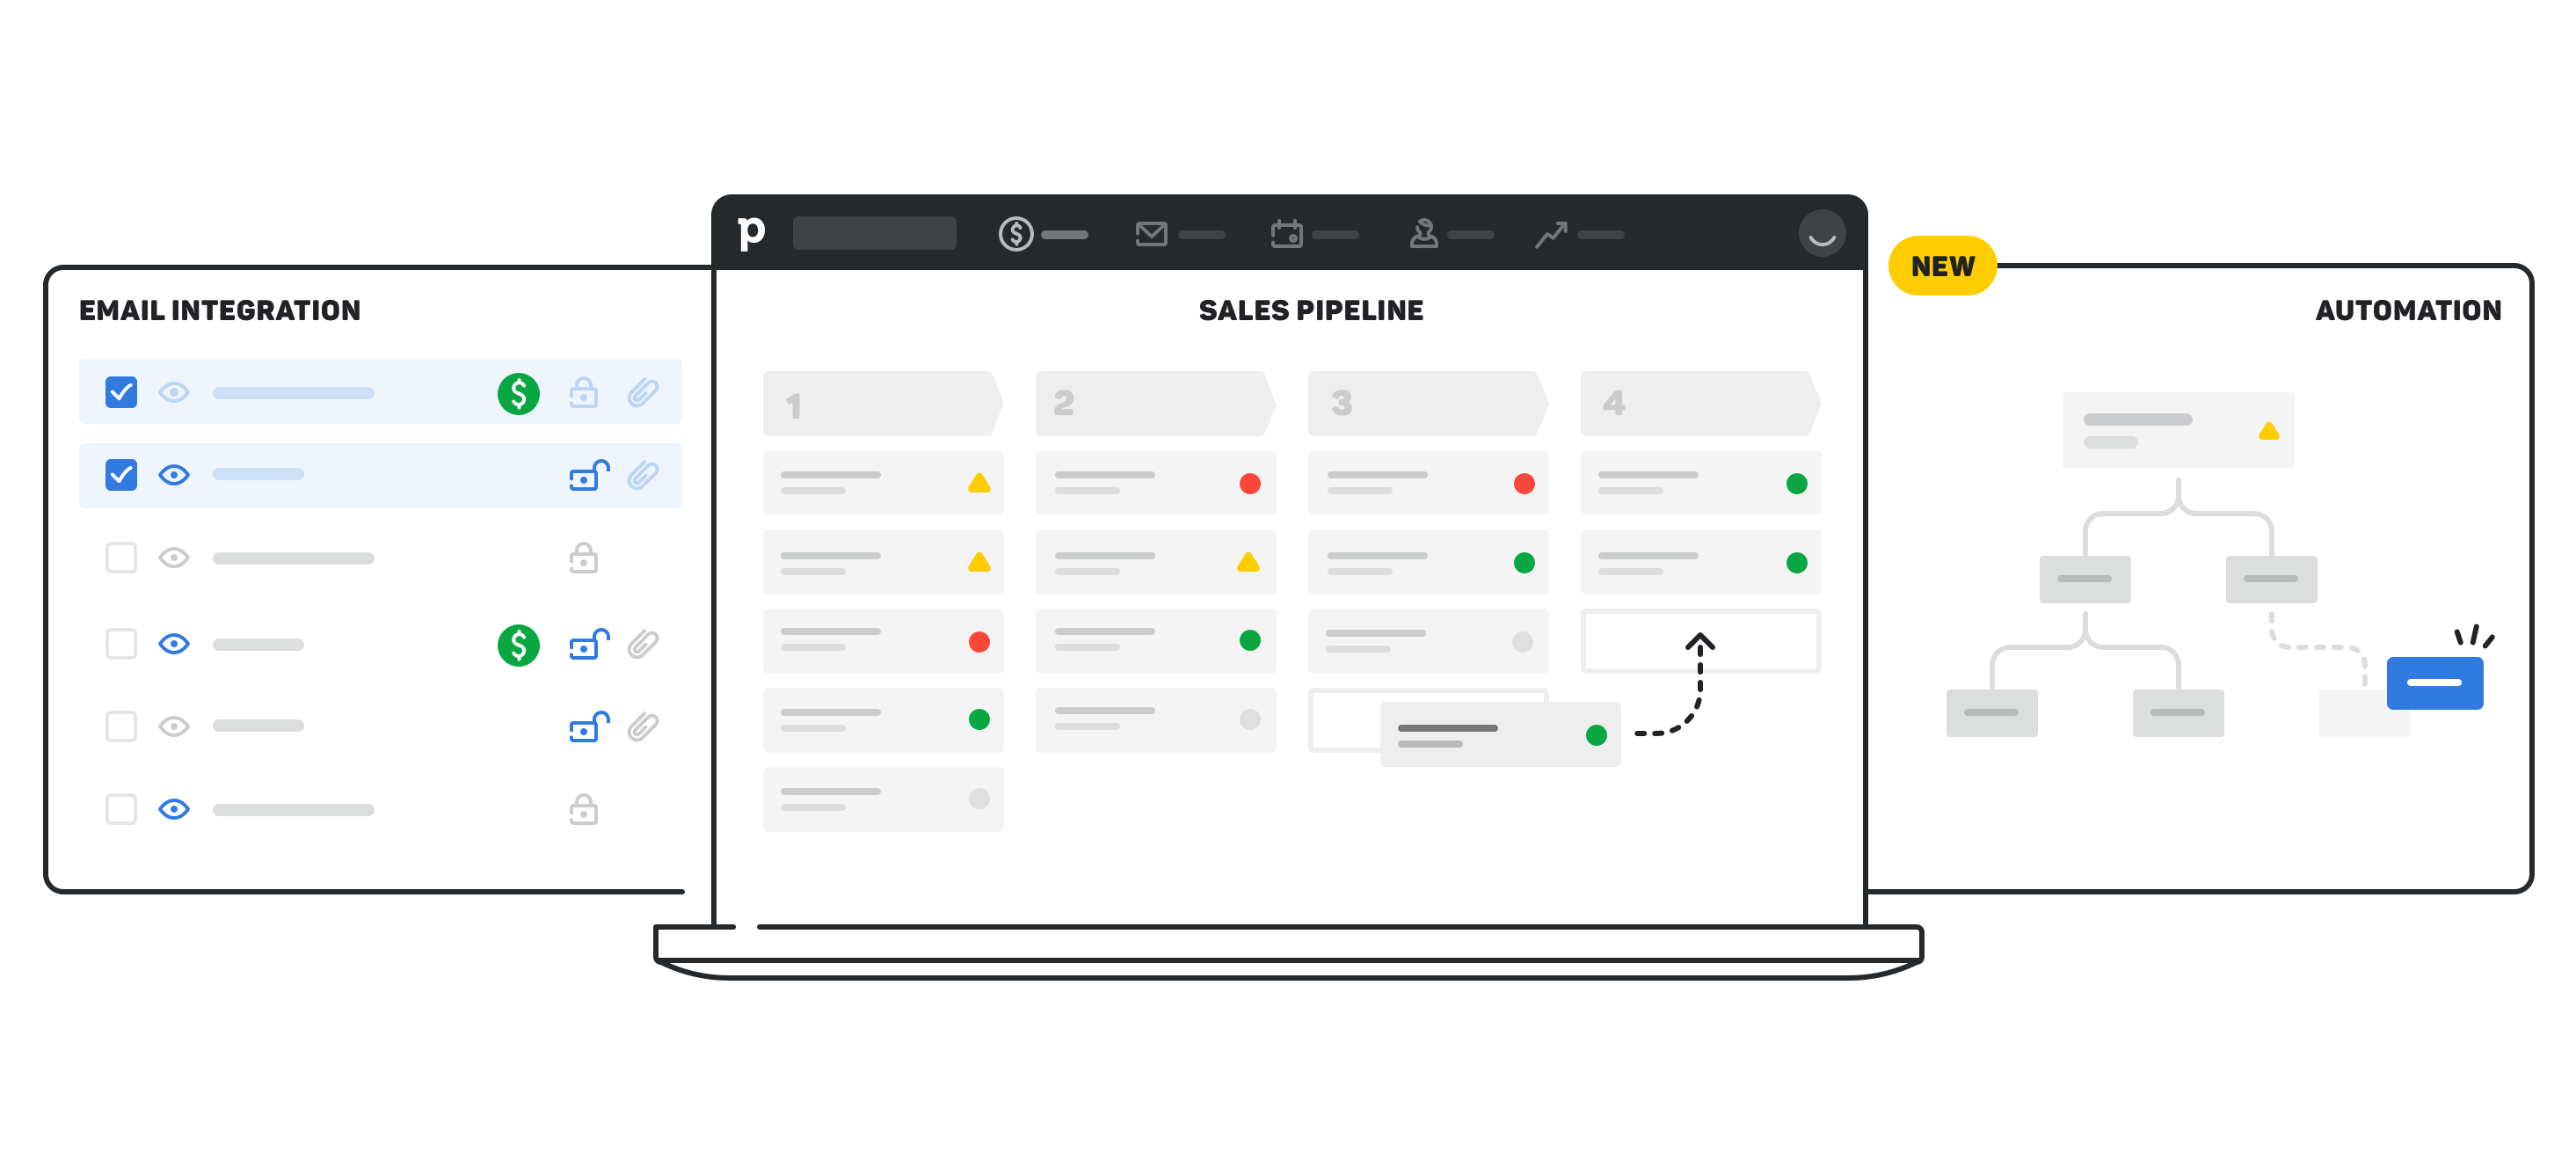 Image from Pipedrive regarding their CRM